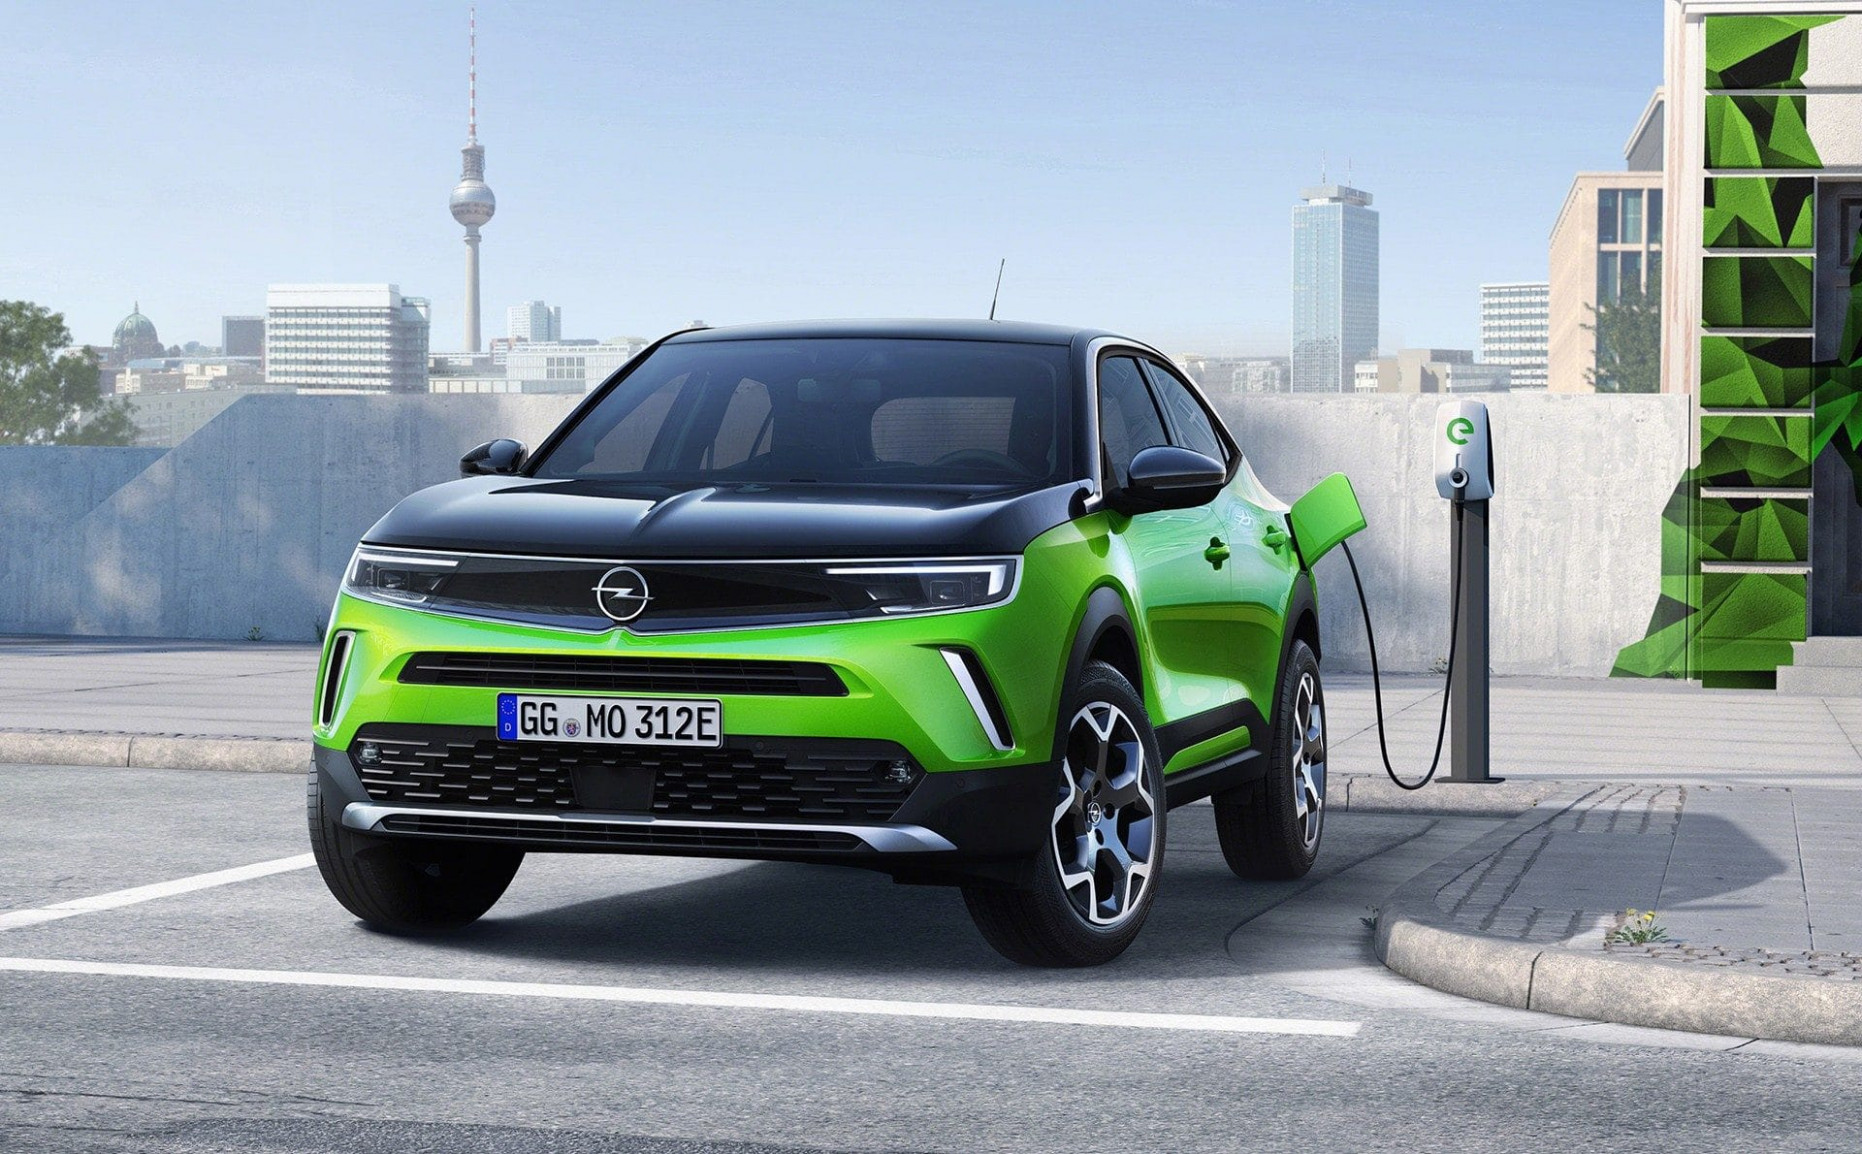 Redesign and Review Nuovo Suv Opel 2022